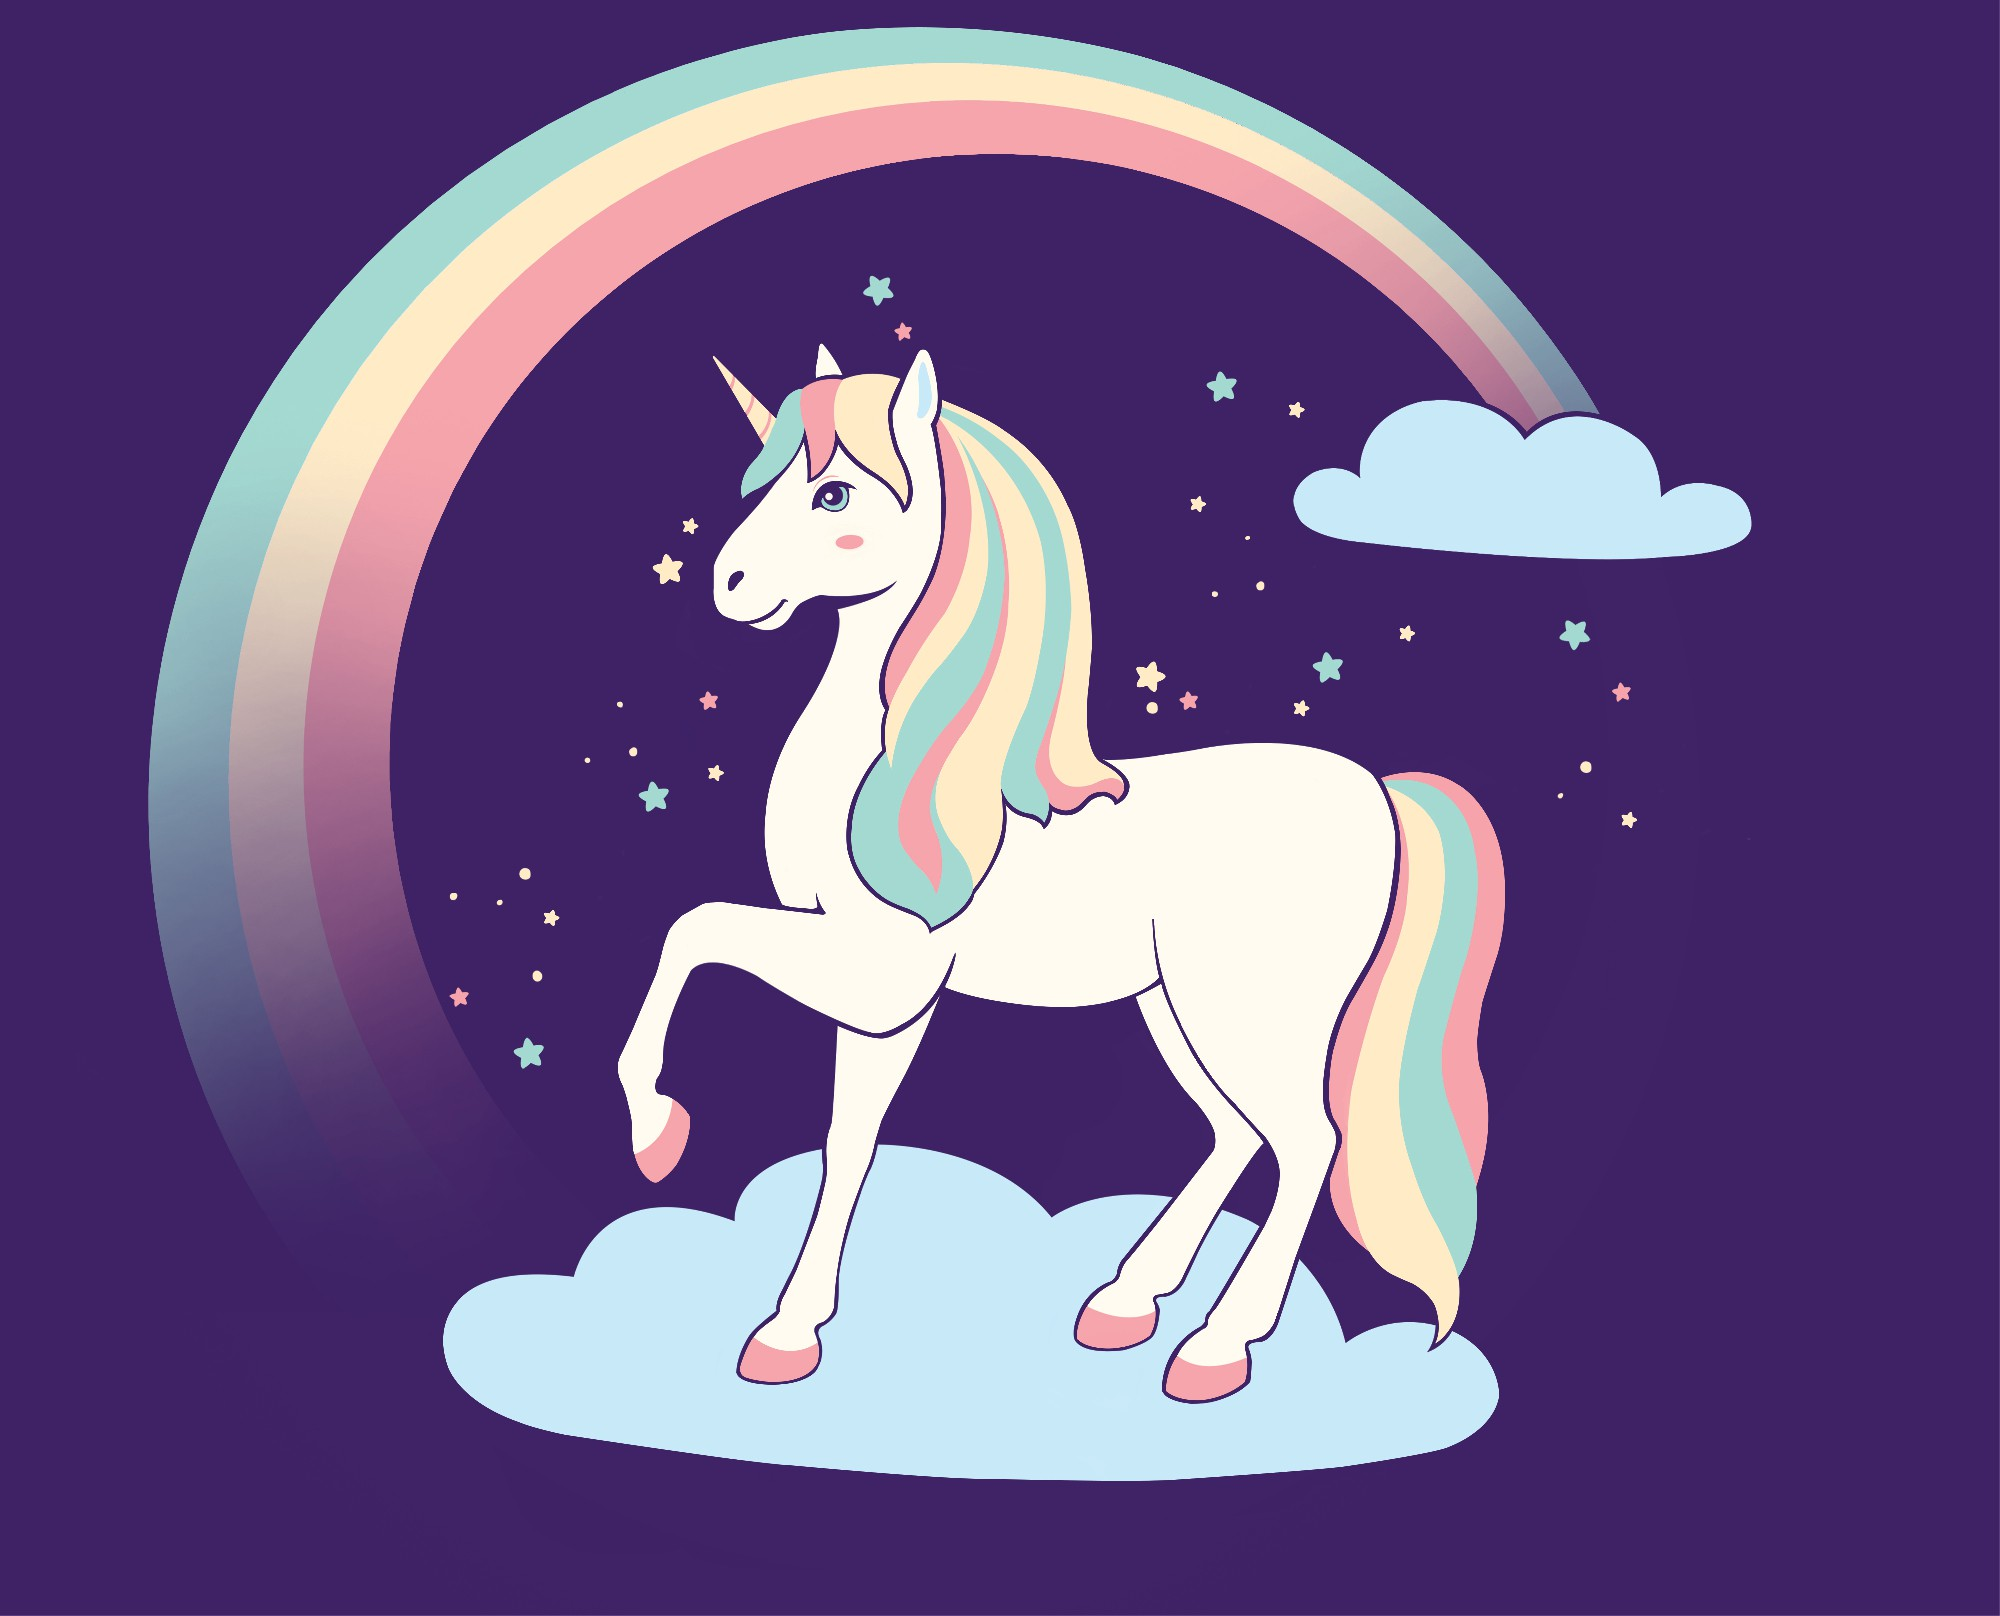 Create a unicorn illustration for a drinking bottle